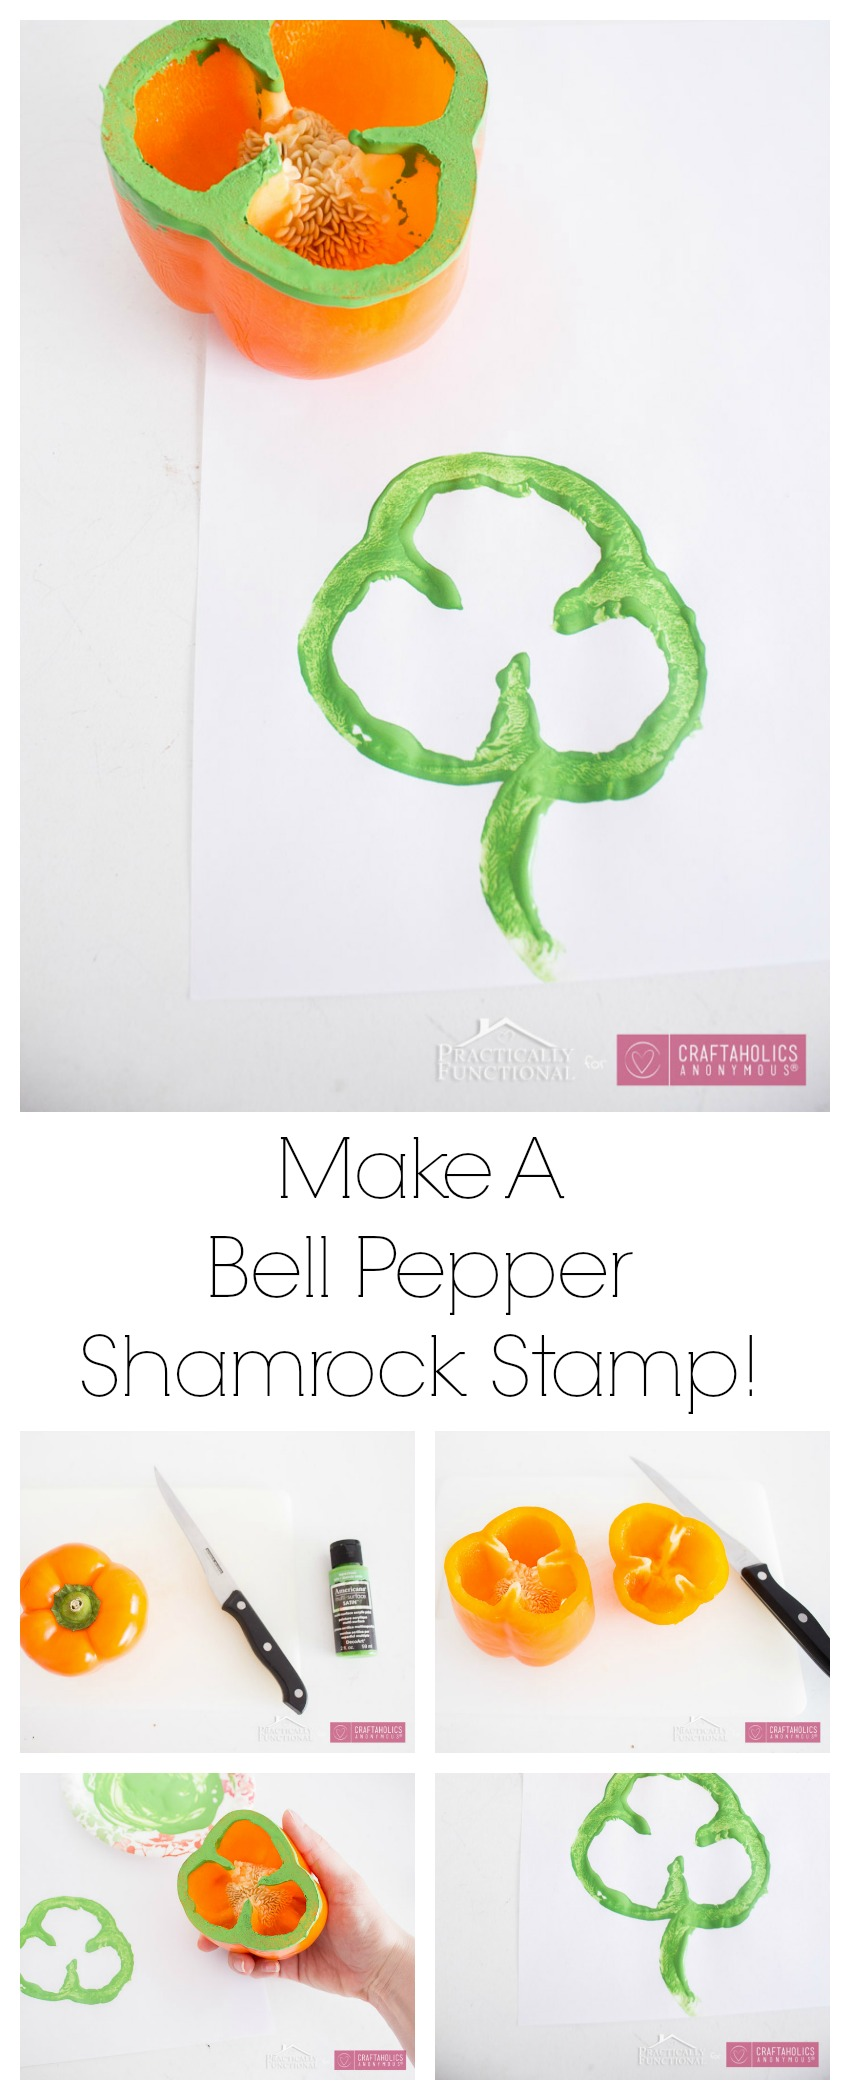 St. Patrick's Day kids craft || How to make bell pepper shamrock stamps